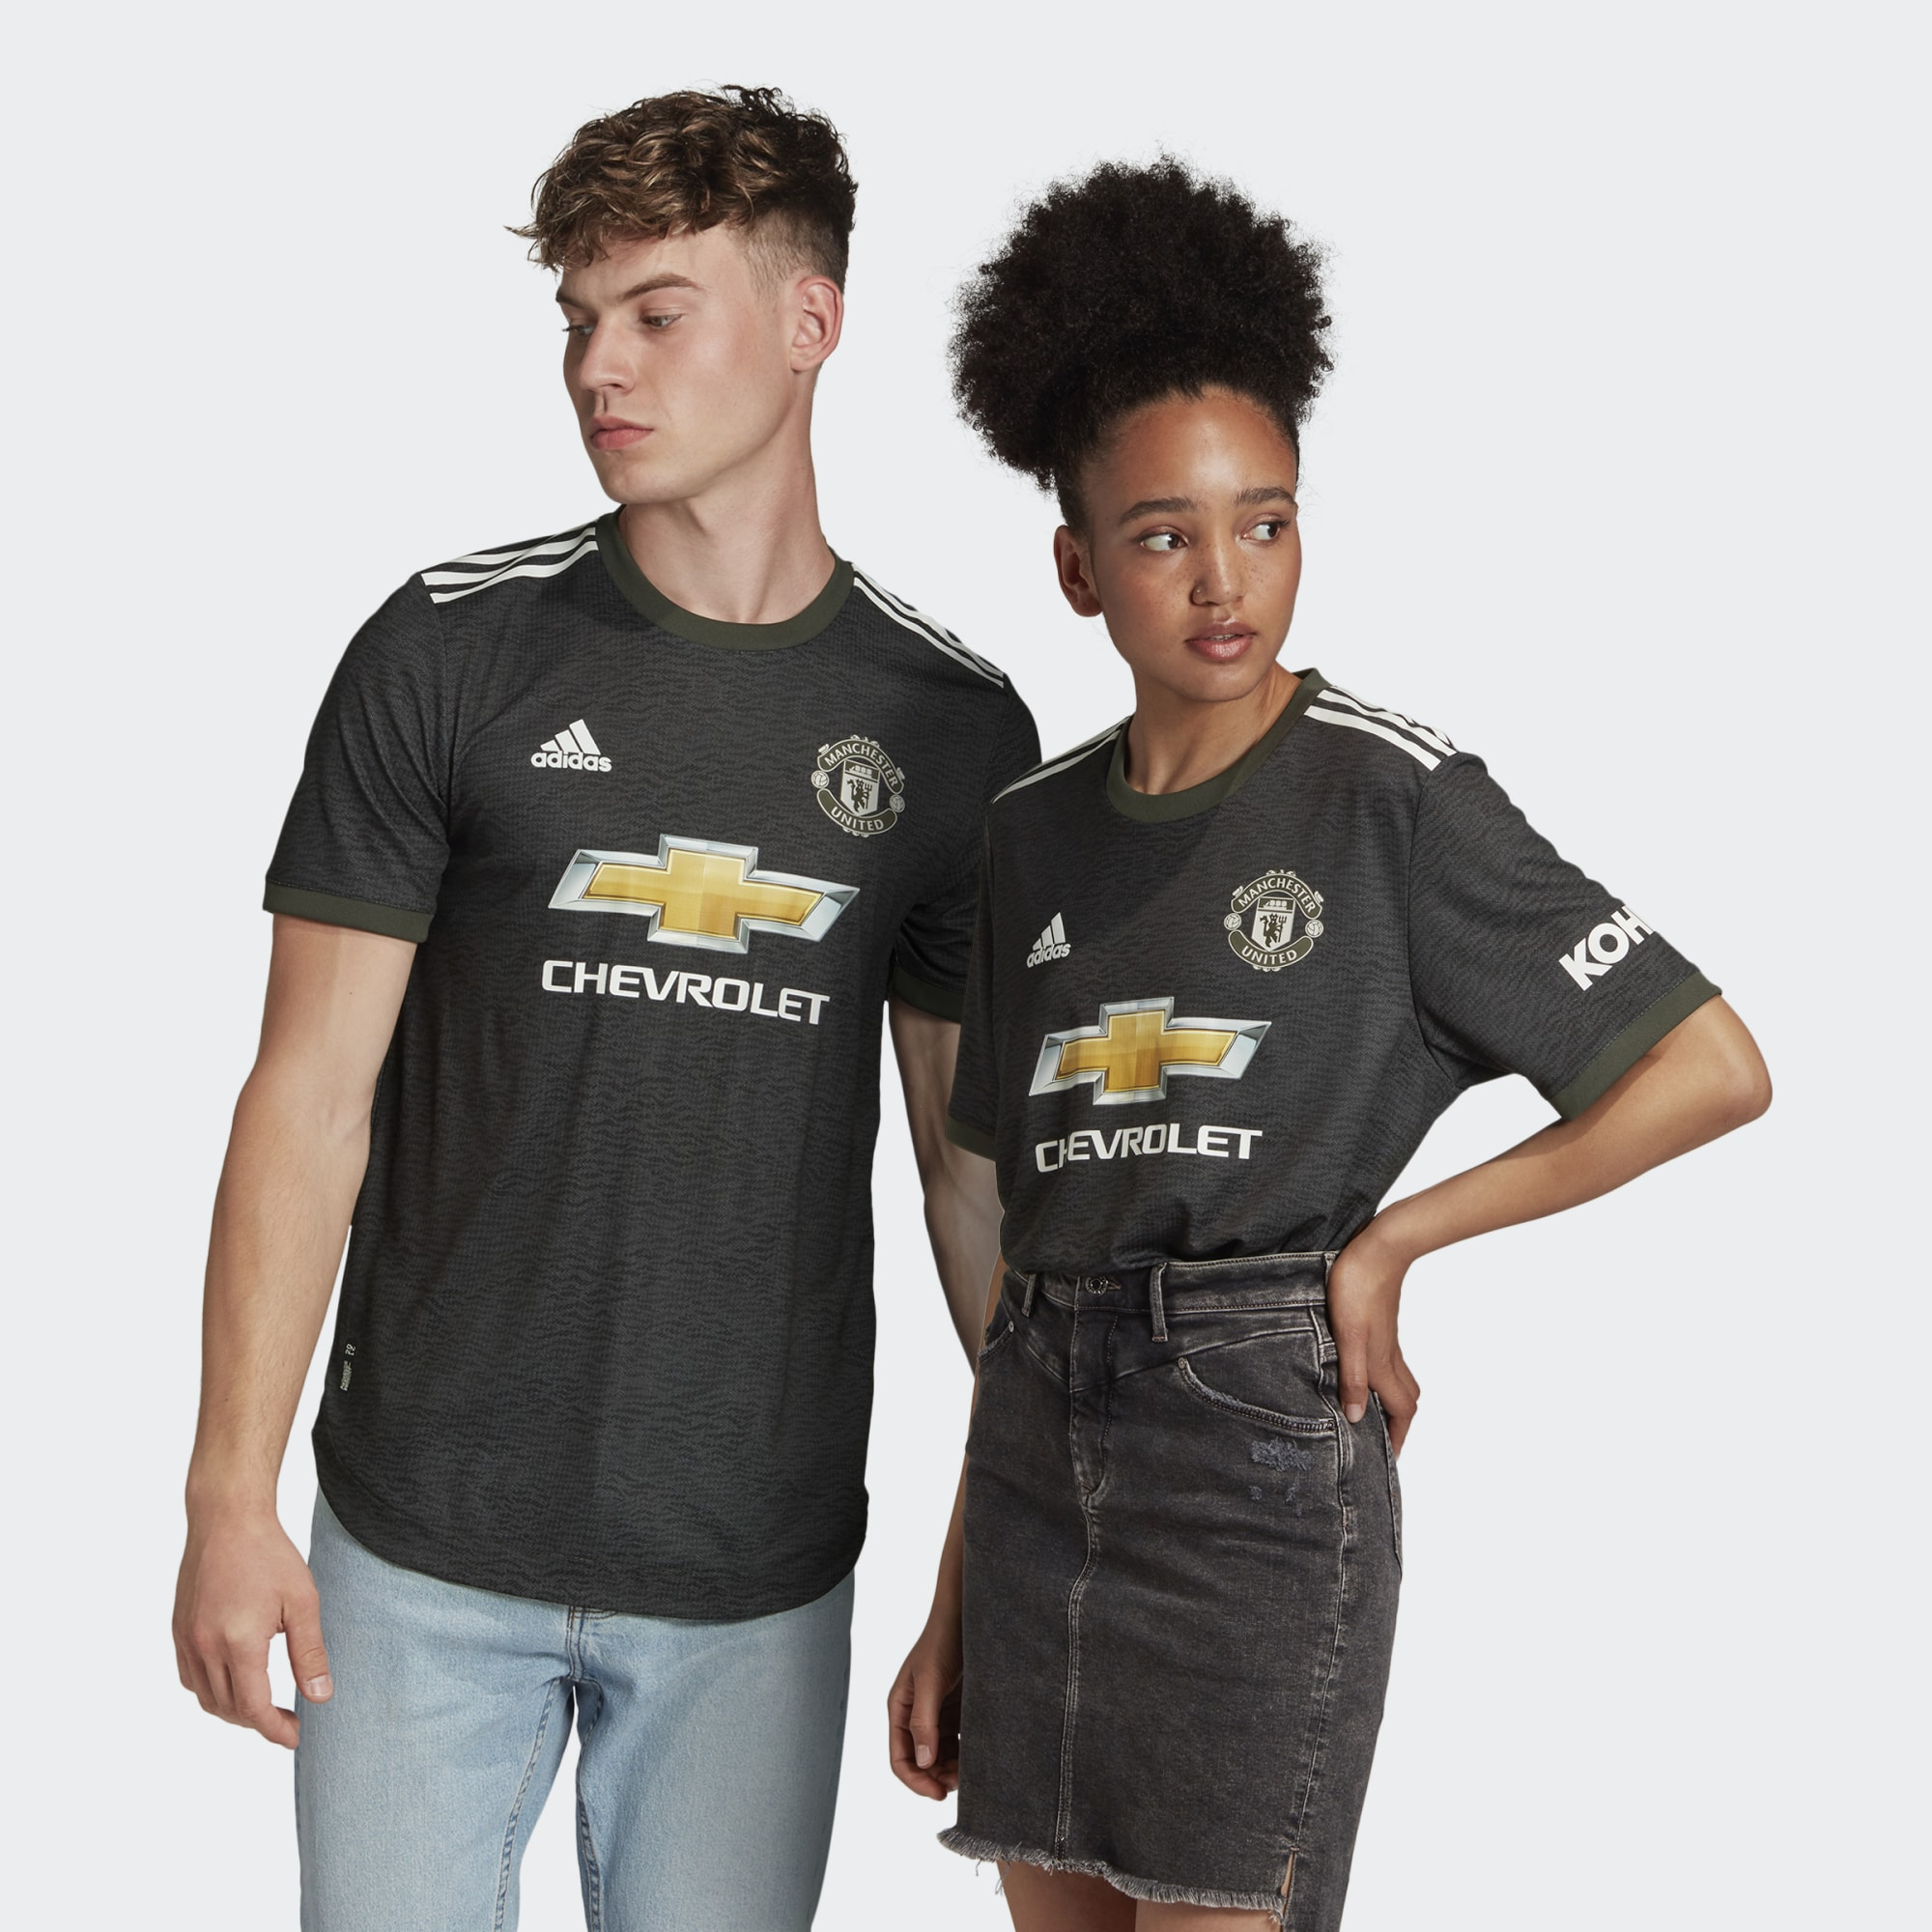 Manchester United 2020 21 Adidas Away Kit 20 21 Kits Football Shirt Blog